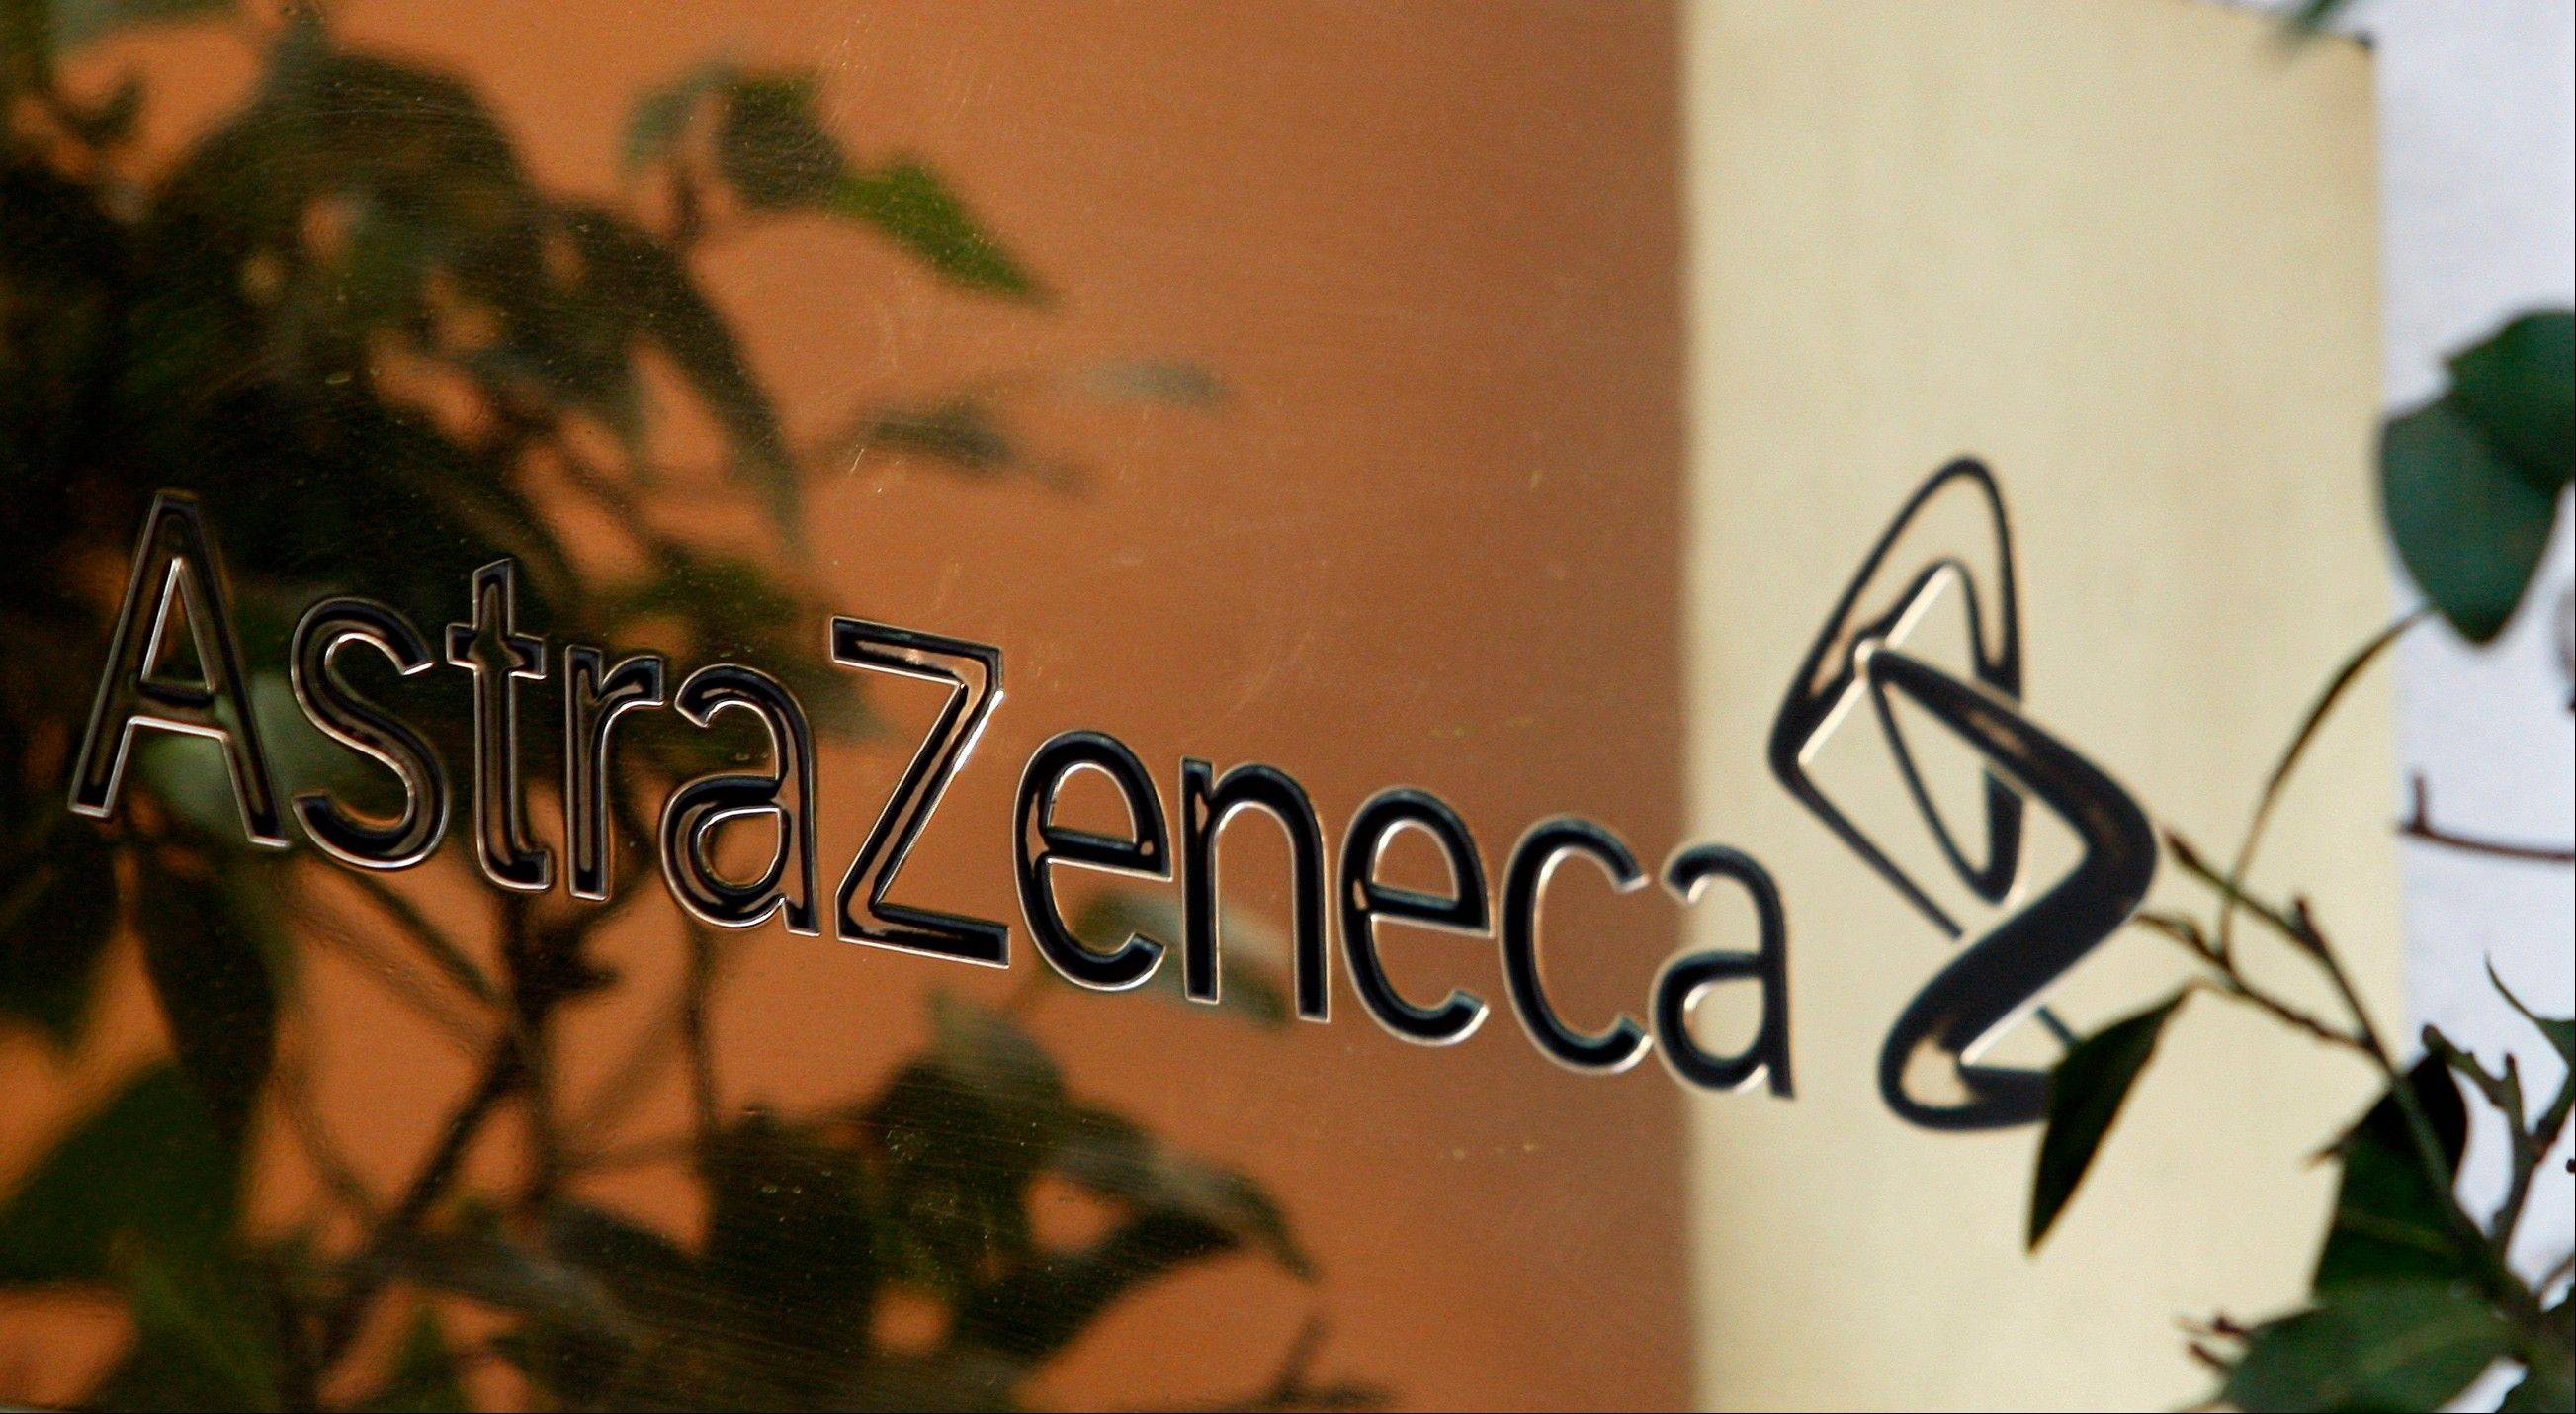 Struggling drug company AstraZeneca PLC says it will cut some 2,300 jobs worldwide as part of a restructuring plan.